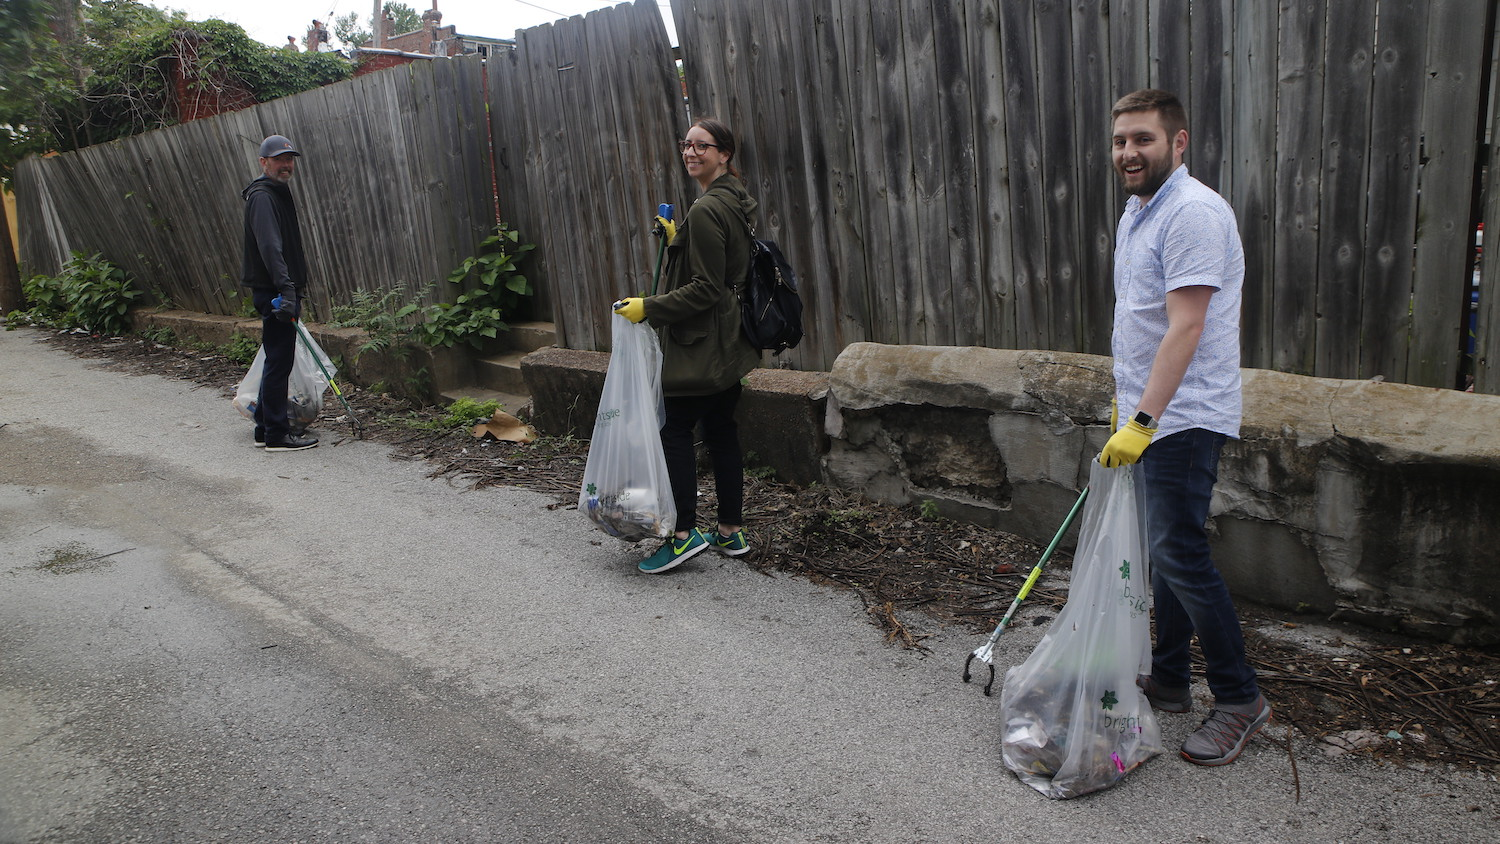 Neighbors band together for event that combines street clean-up, networking and beer